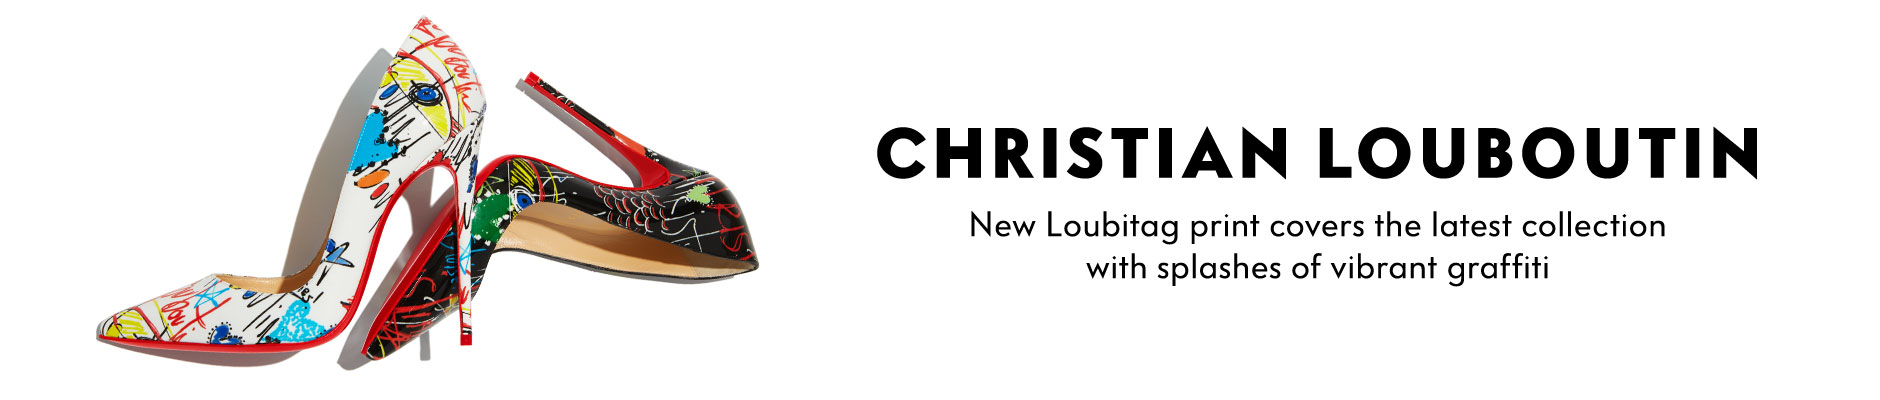 Christian Louboutin - New Loubitag print covers the latest collection with splashes of vibrant graffiti